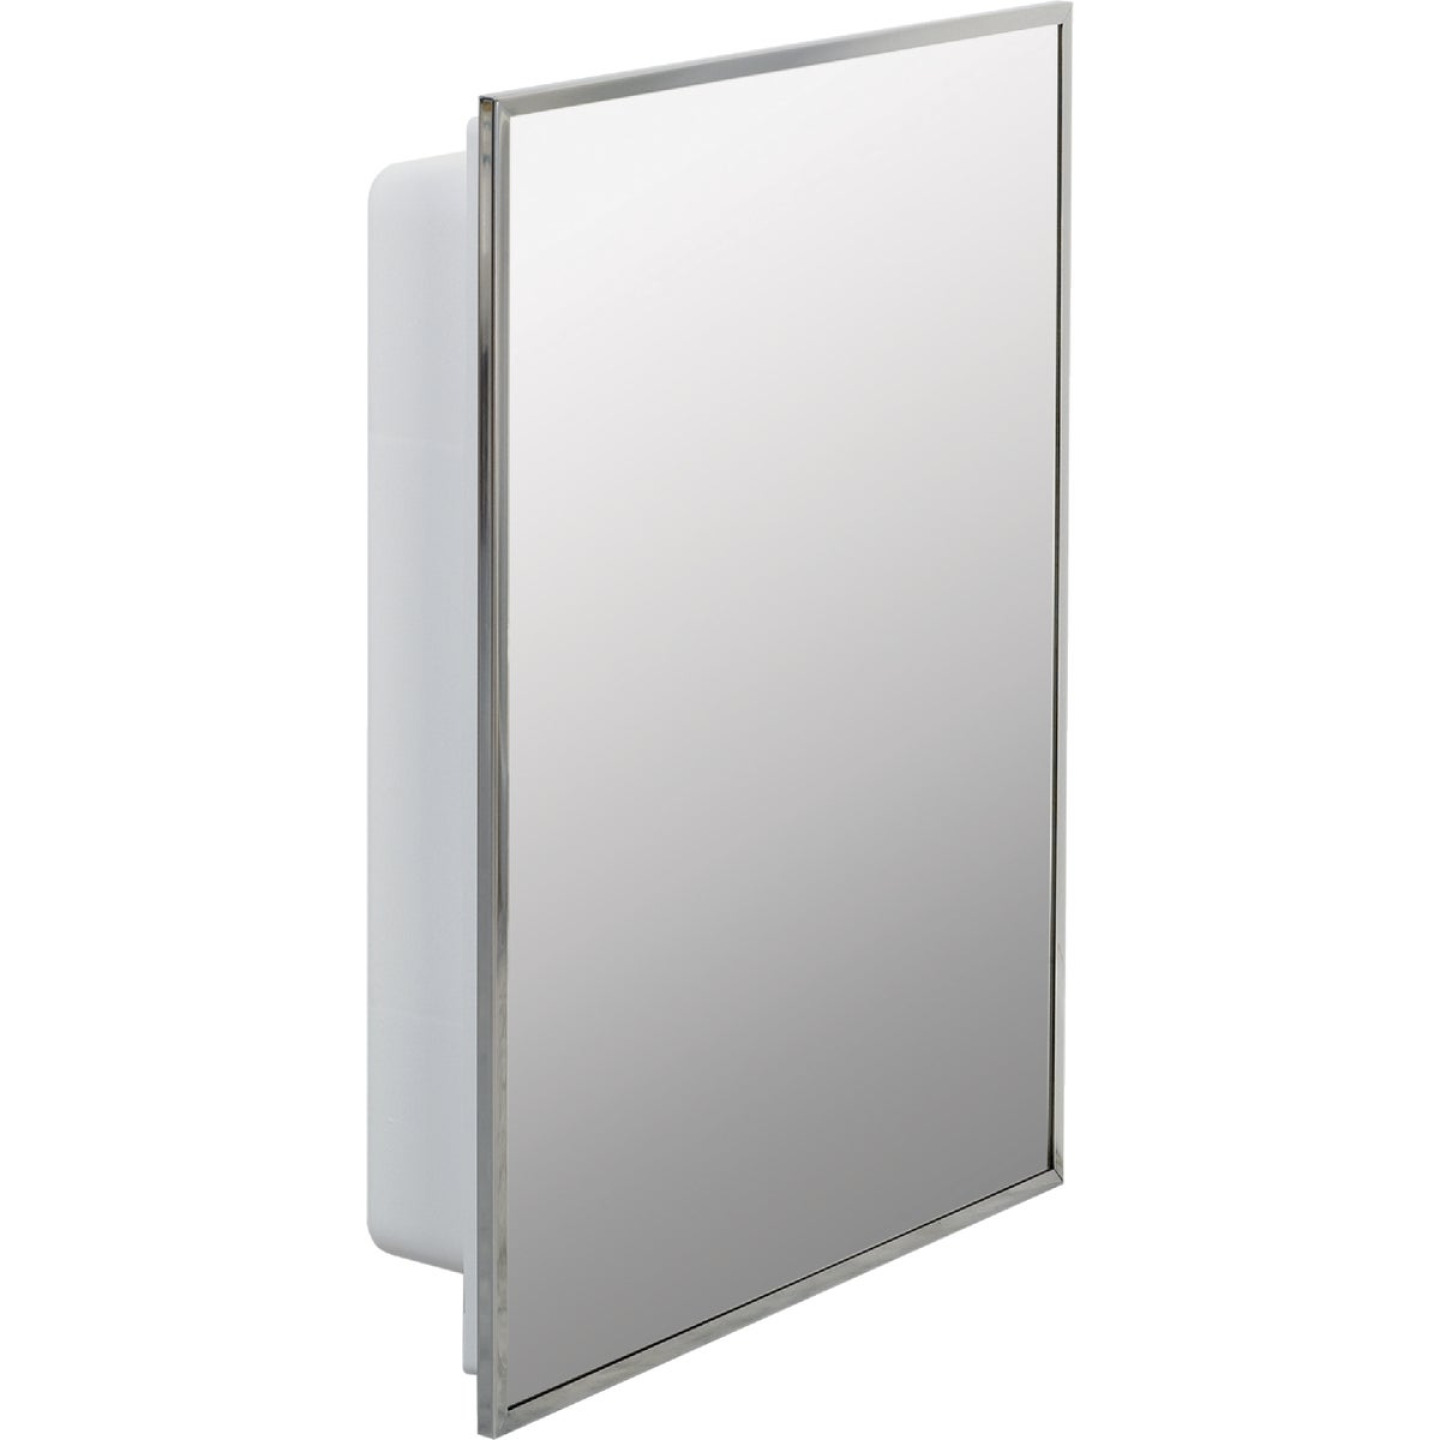 Zenith Stainless Steel 16-1/8 In. W x 20-1/8 In. H x 3-1/4 In. D Single Mirror Surface/Recess Mount Medicine Cabinet Image 4